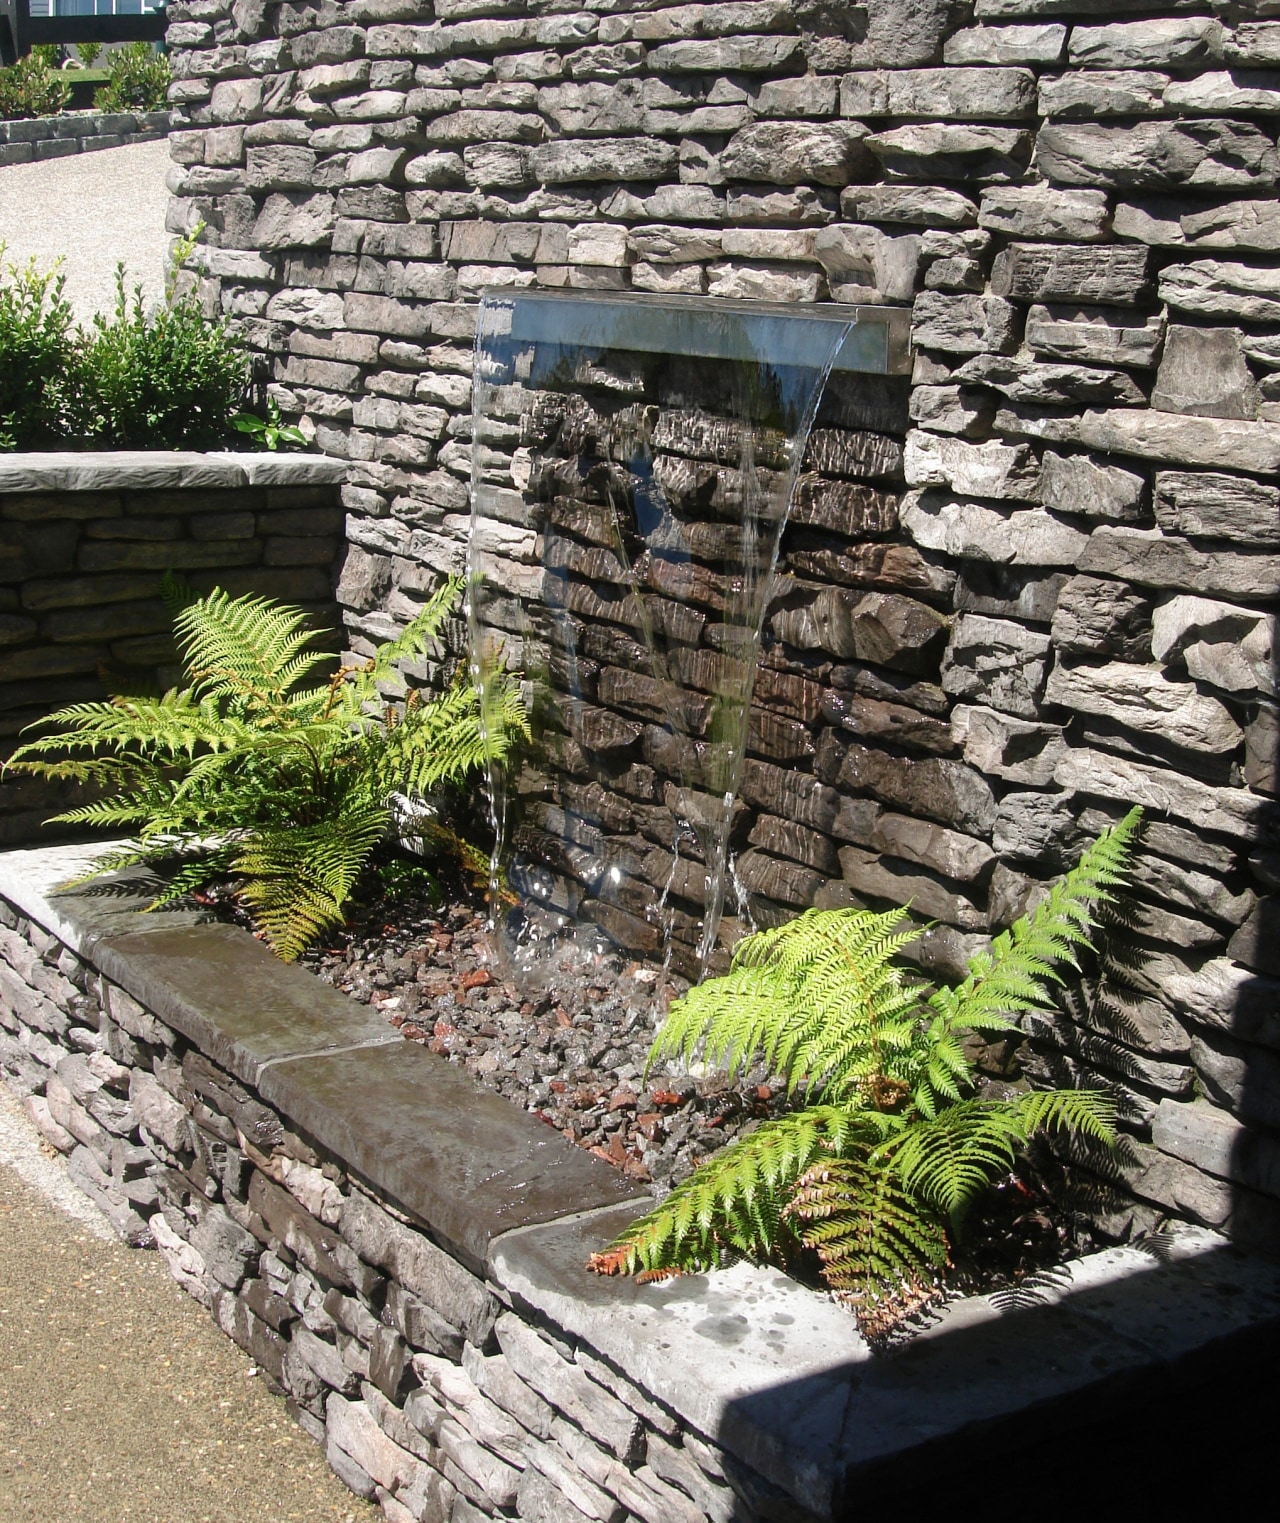 View of garden which includes a stone wall garden, grass, landscape, landscaping, outdoor structure, plant, stone wall, walkway, wall, gray, black